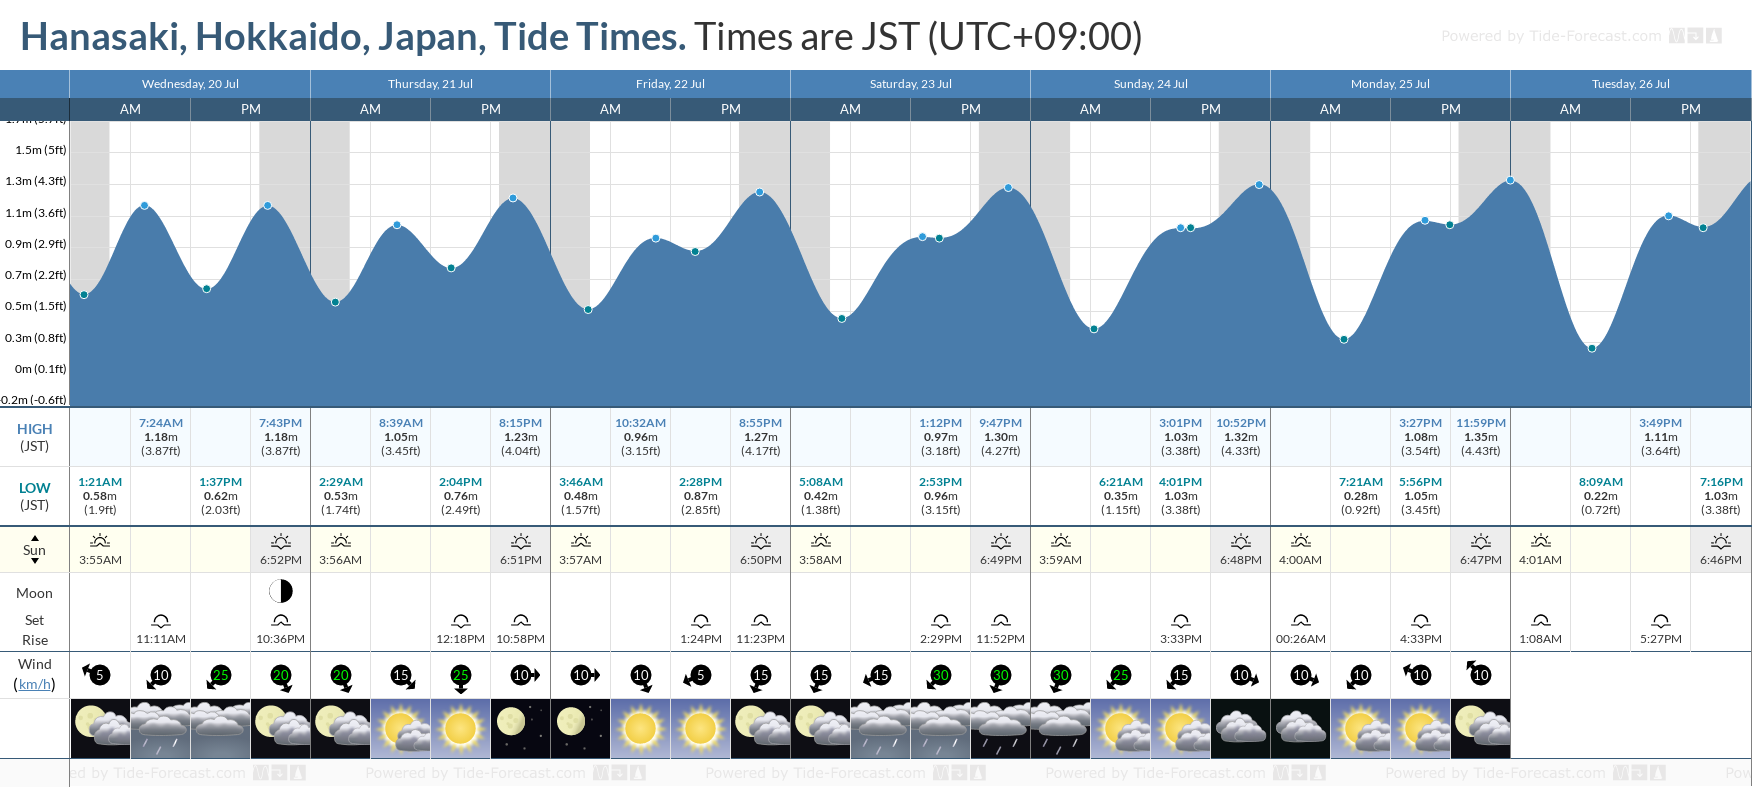 Hanasaki, Hokkaido, Japan Tide Chart including high and low tide tide times for the next 7 days